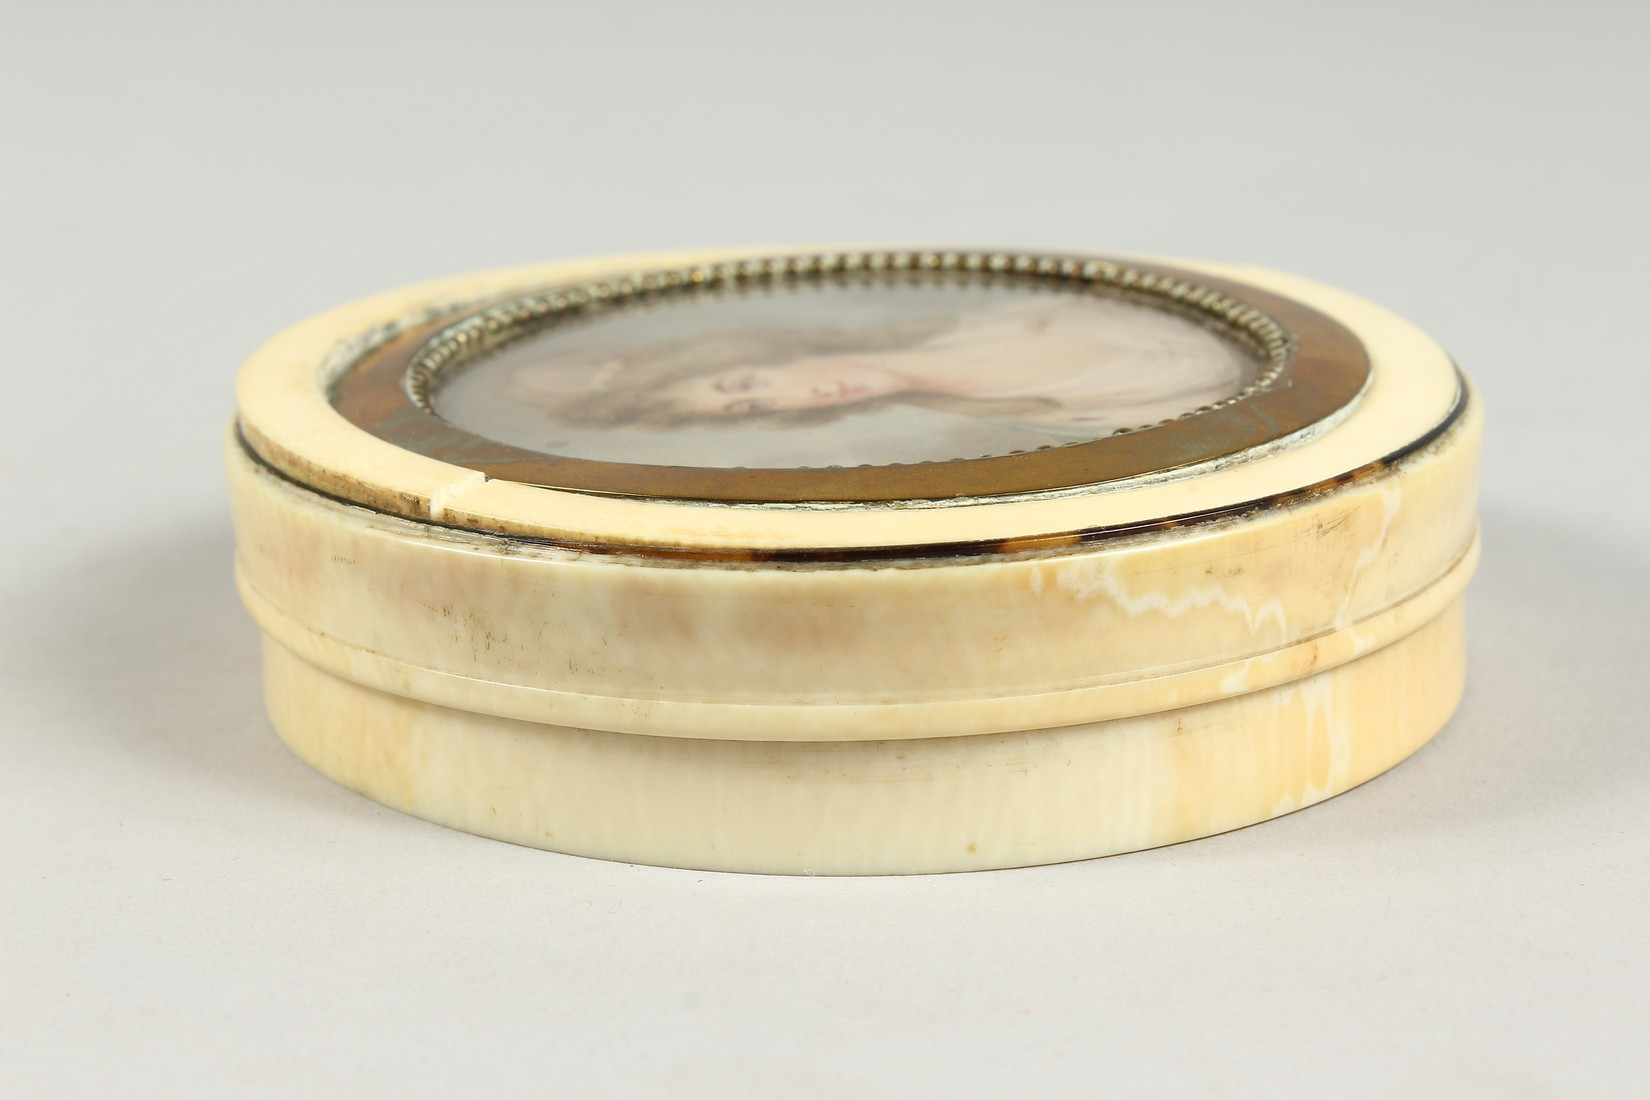 A GEORGIAN IVORY CIRCULAR BOX, the top painted with a portrait of Lady Mary Onslow. 3.75ins - Image 4 of 8